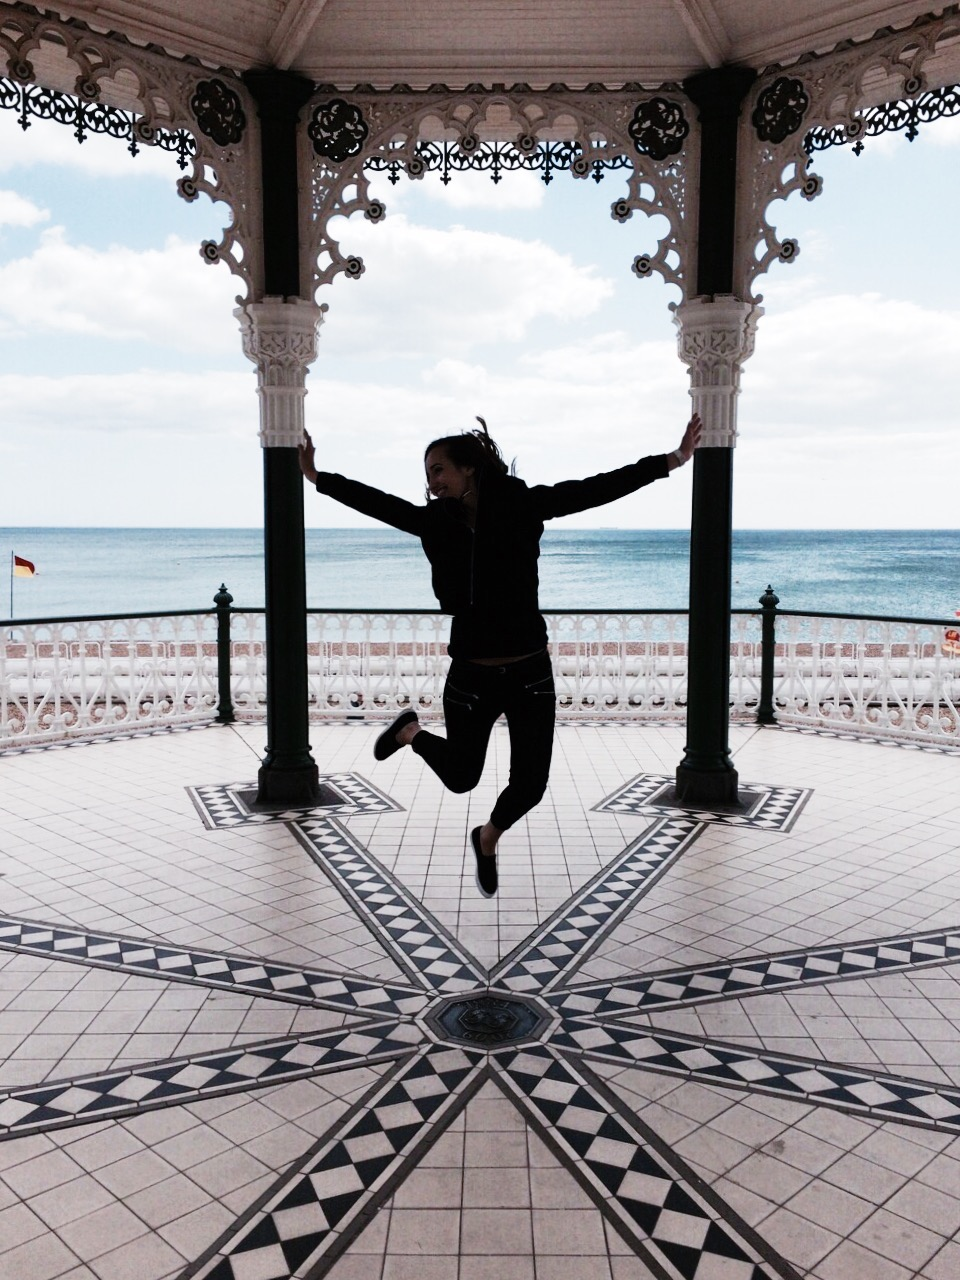 girl jump sky brighton england sea view seaside beach waves